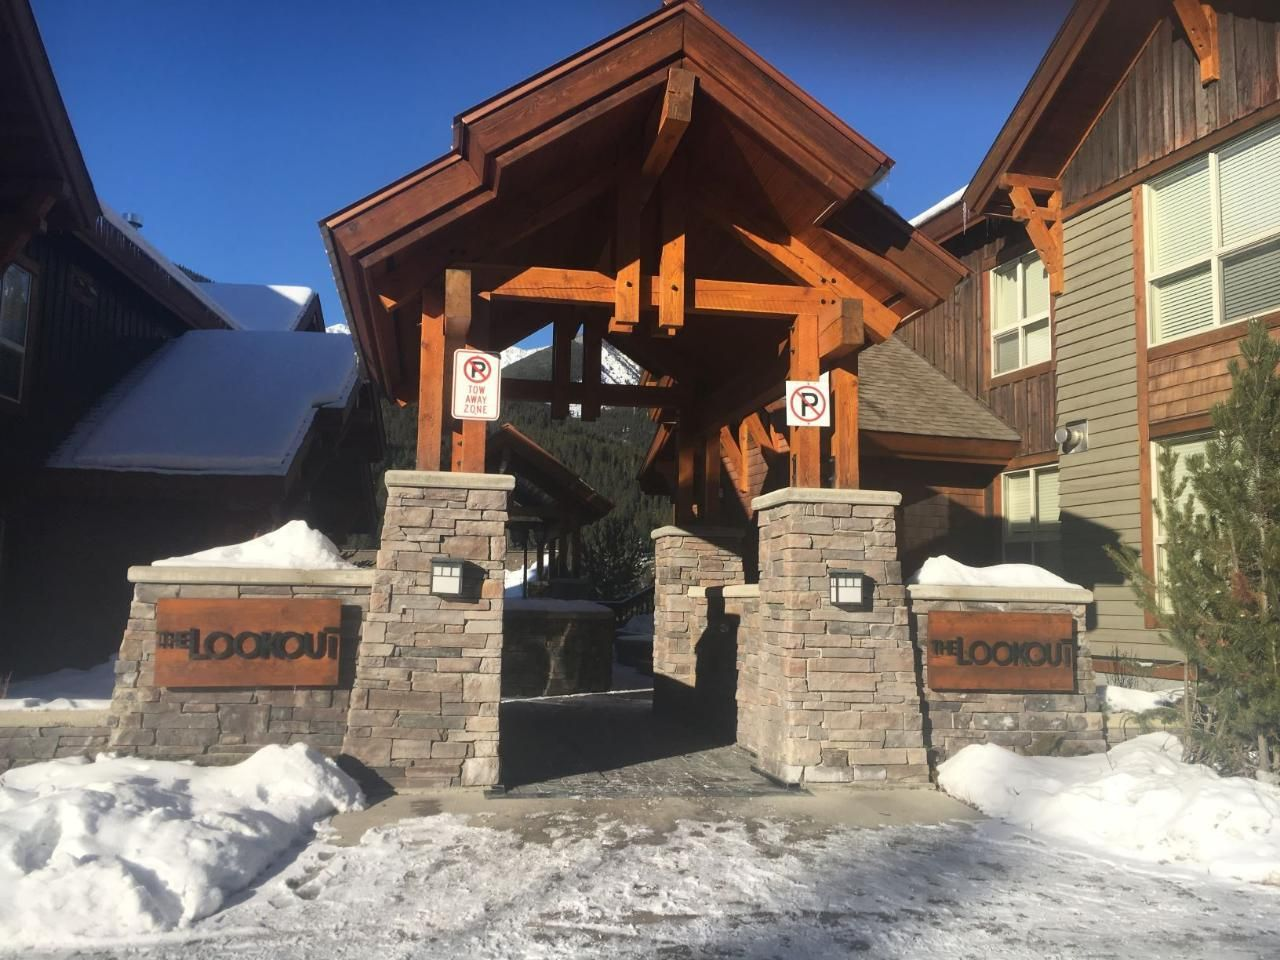 Main Photo: 113 A - 2049 SUMMIT DRIVE in Panorama: Condo for sale : MLS®# 2459424